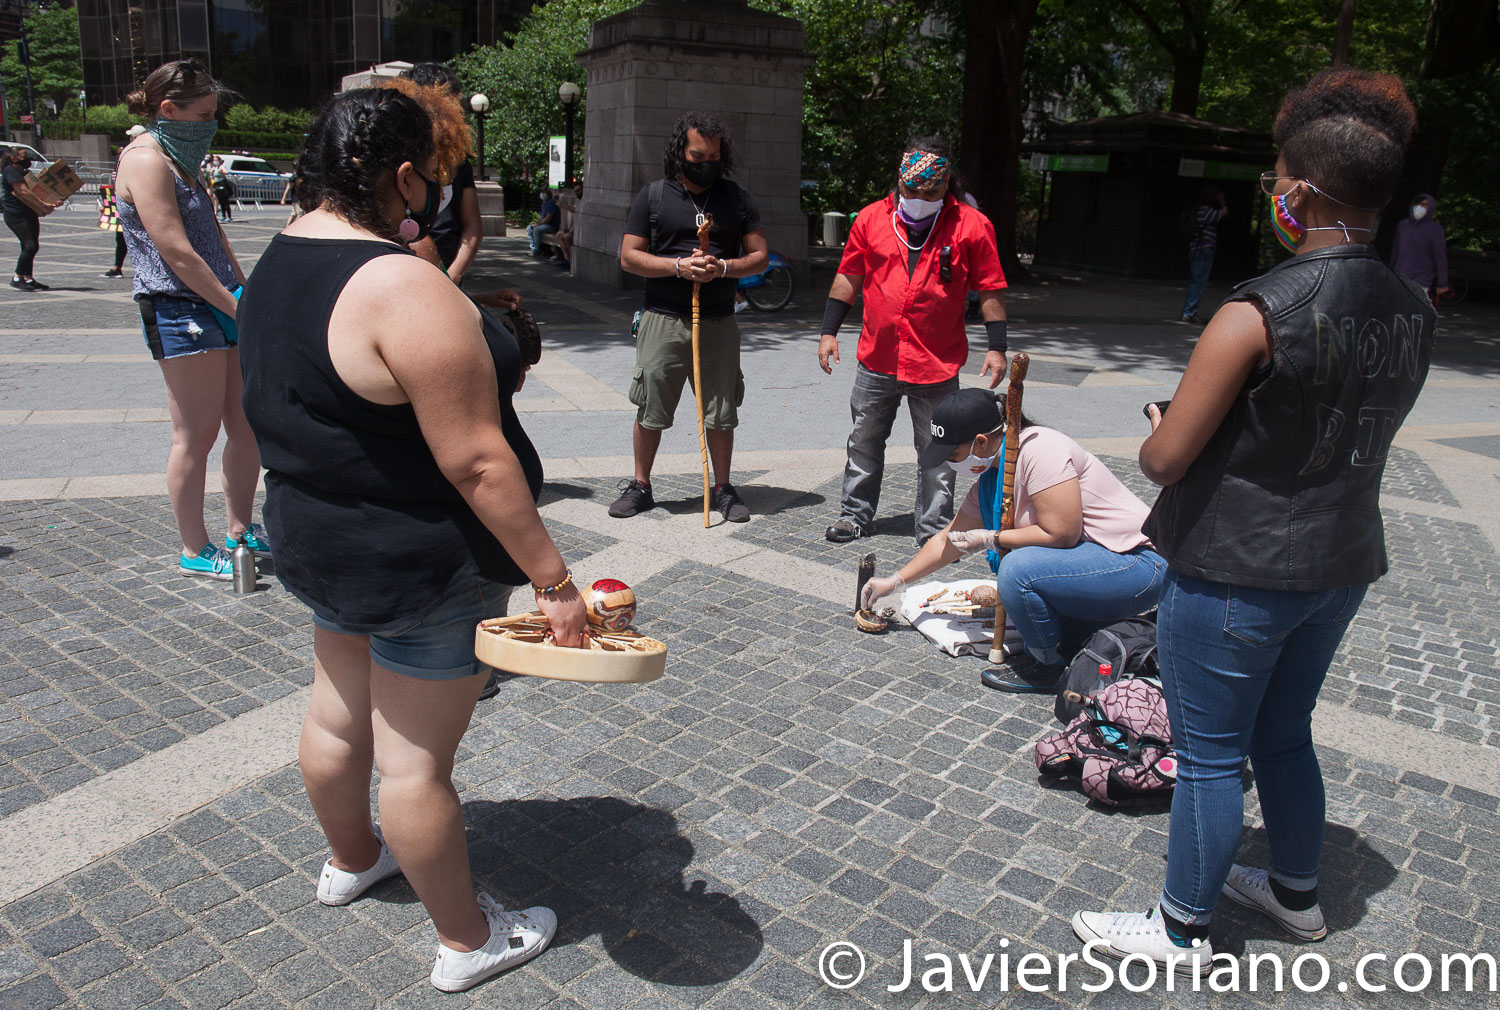 Sunday, June 7, 2020. New York City - Memorial for George Floyd at the Merchant's Gate in Manhattan. The memorial was organized by the Taino community in New York City. Photo by Javier Soriano/www.JavierSoriano.com